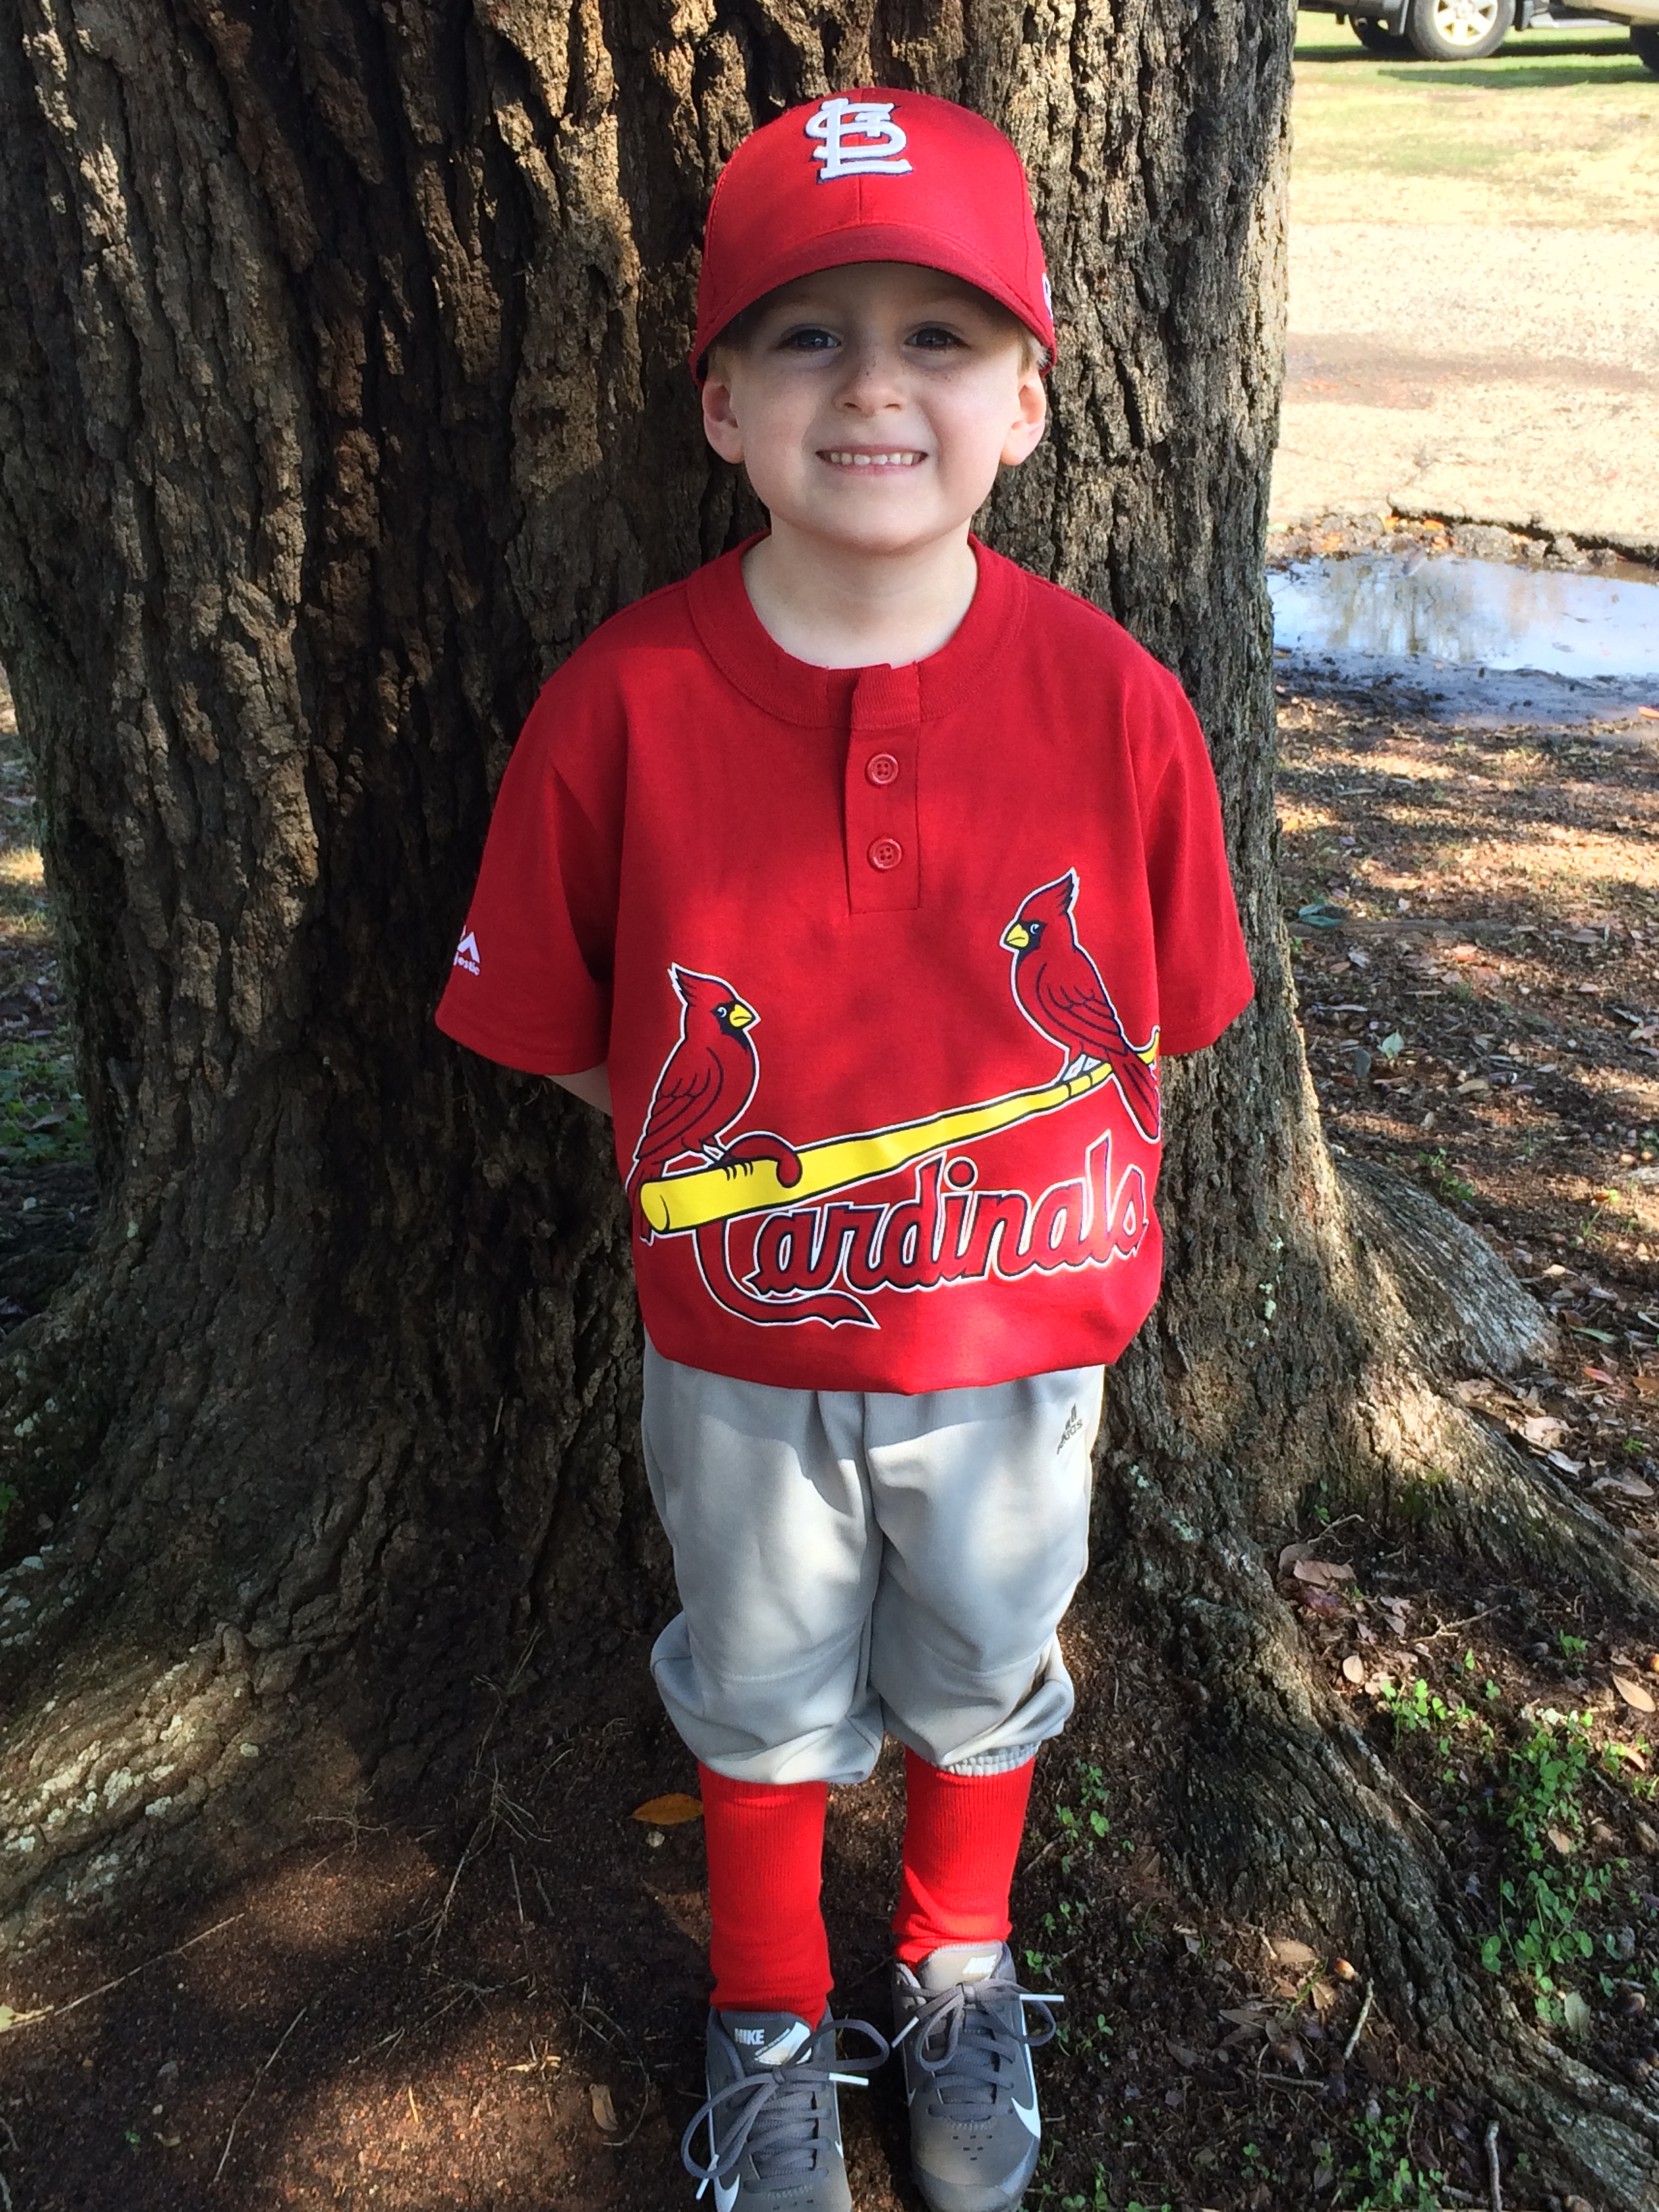 Bradley's favorite hobbies are fishing and baseball, two sports he's now participating in seizure-free.